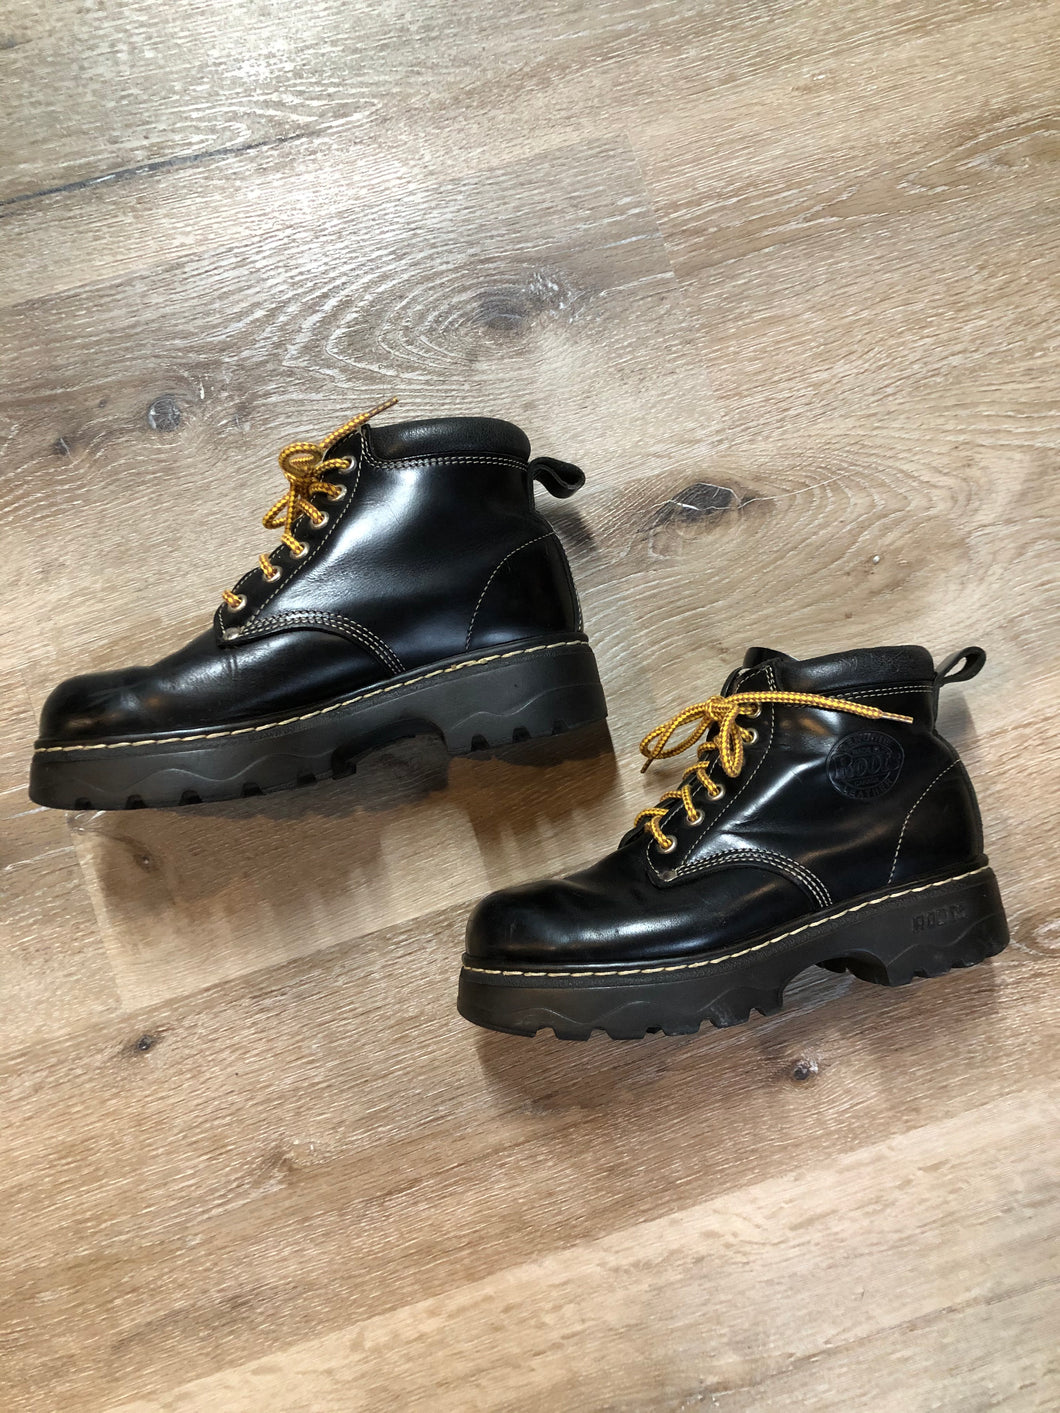 Kingspier Vintage - Roots Tuff hiking boots in black smooth leather with padded ankle and thick sole. Made in Canada.  Size 7.5 womens  The uppers and soles are in excellent condition with some minor wear.